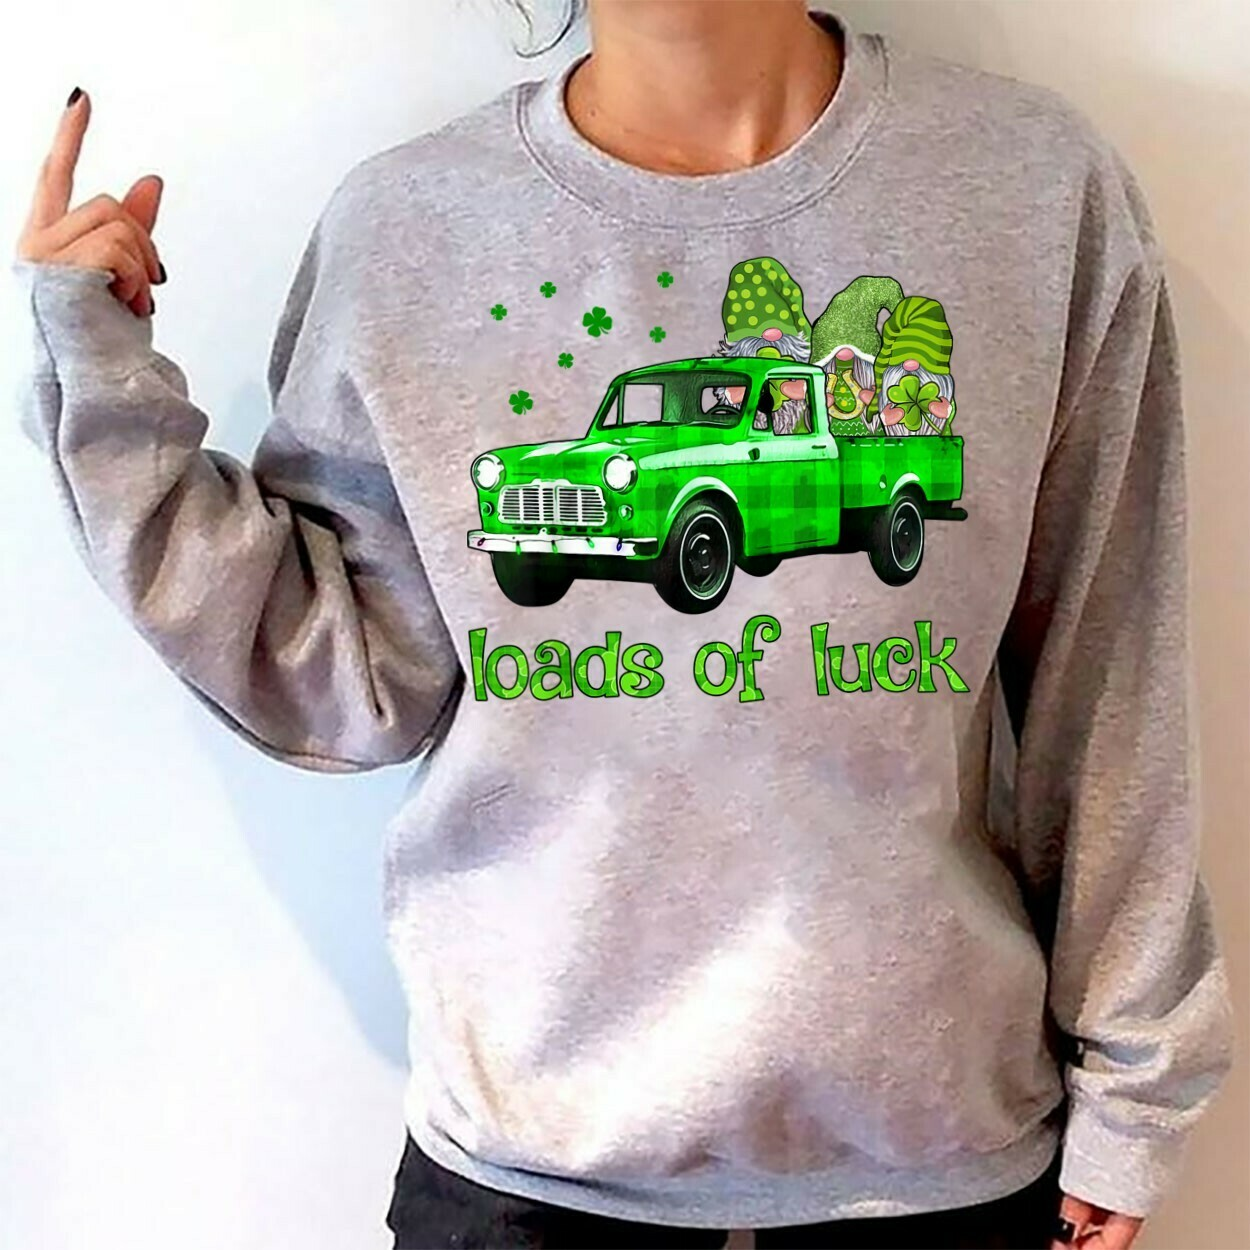 Irish Gnomes Happy st patrick's day,Three Gnomes Holding Clover Shamrocks,Green Leprechan gnome  T-Shirt Hoodie Sweatshirt Sweater Tee Kids Youth Gifts Jolly Family Gifts